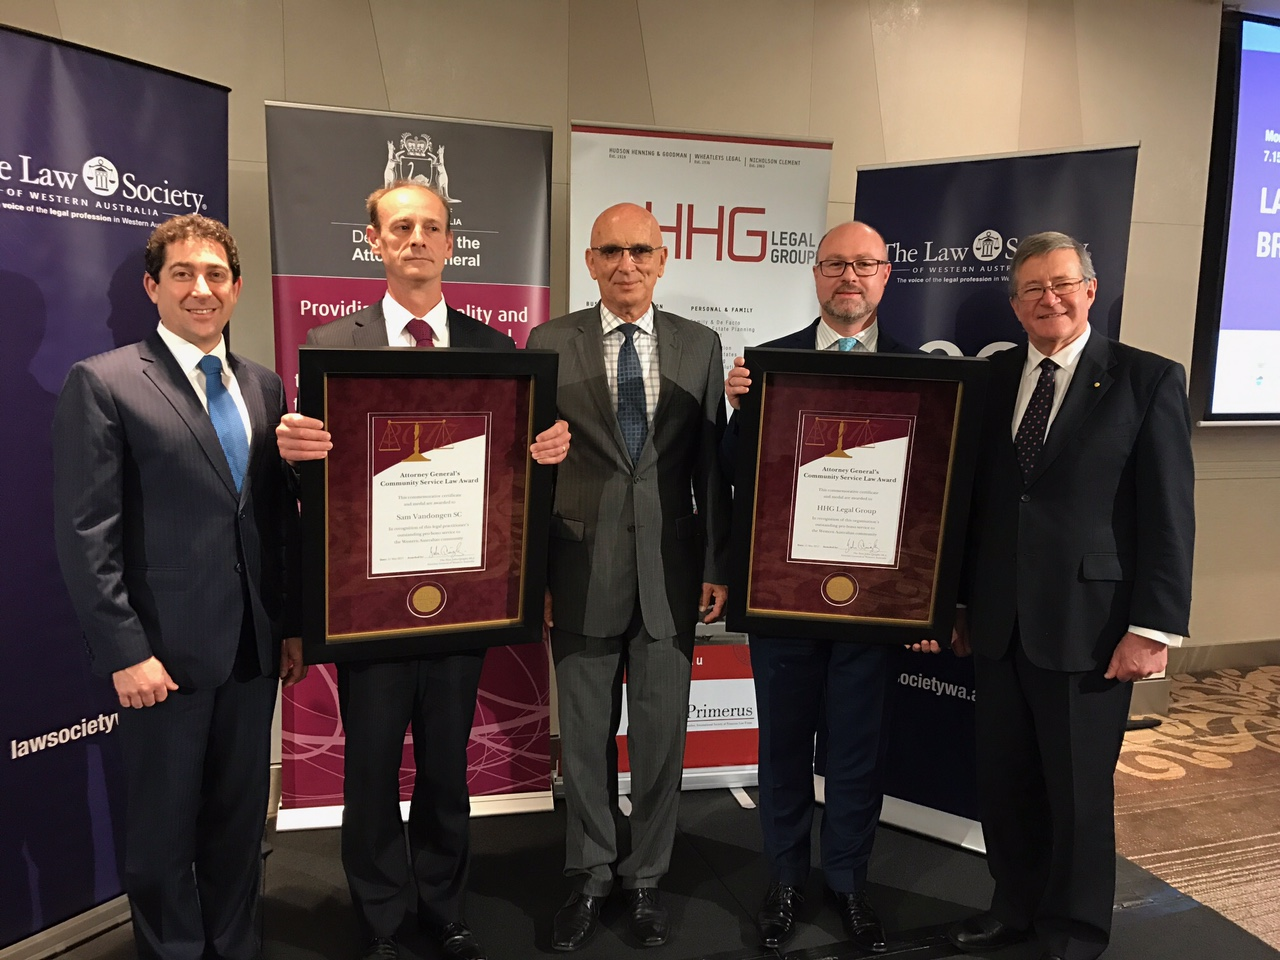 (L-R) Law Society of WA President Alain Musikanth, Sam Vandongen SC (Francis Burt Chambers), Attorney-General John Quigley, Murray Thornhill (HHG Legal Group), Chief Justice  Wayne Martin AC.